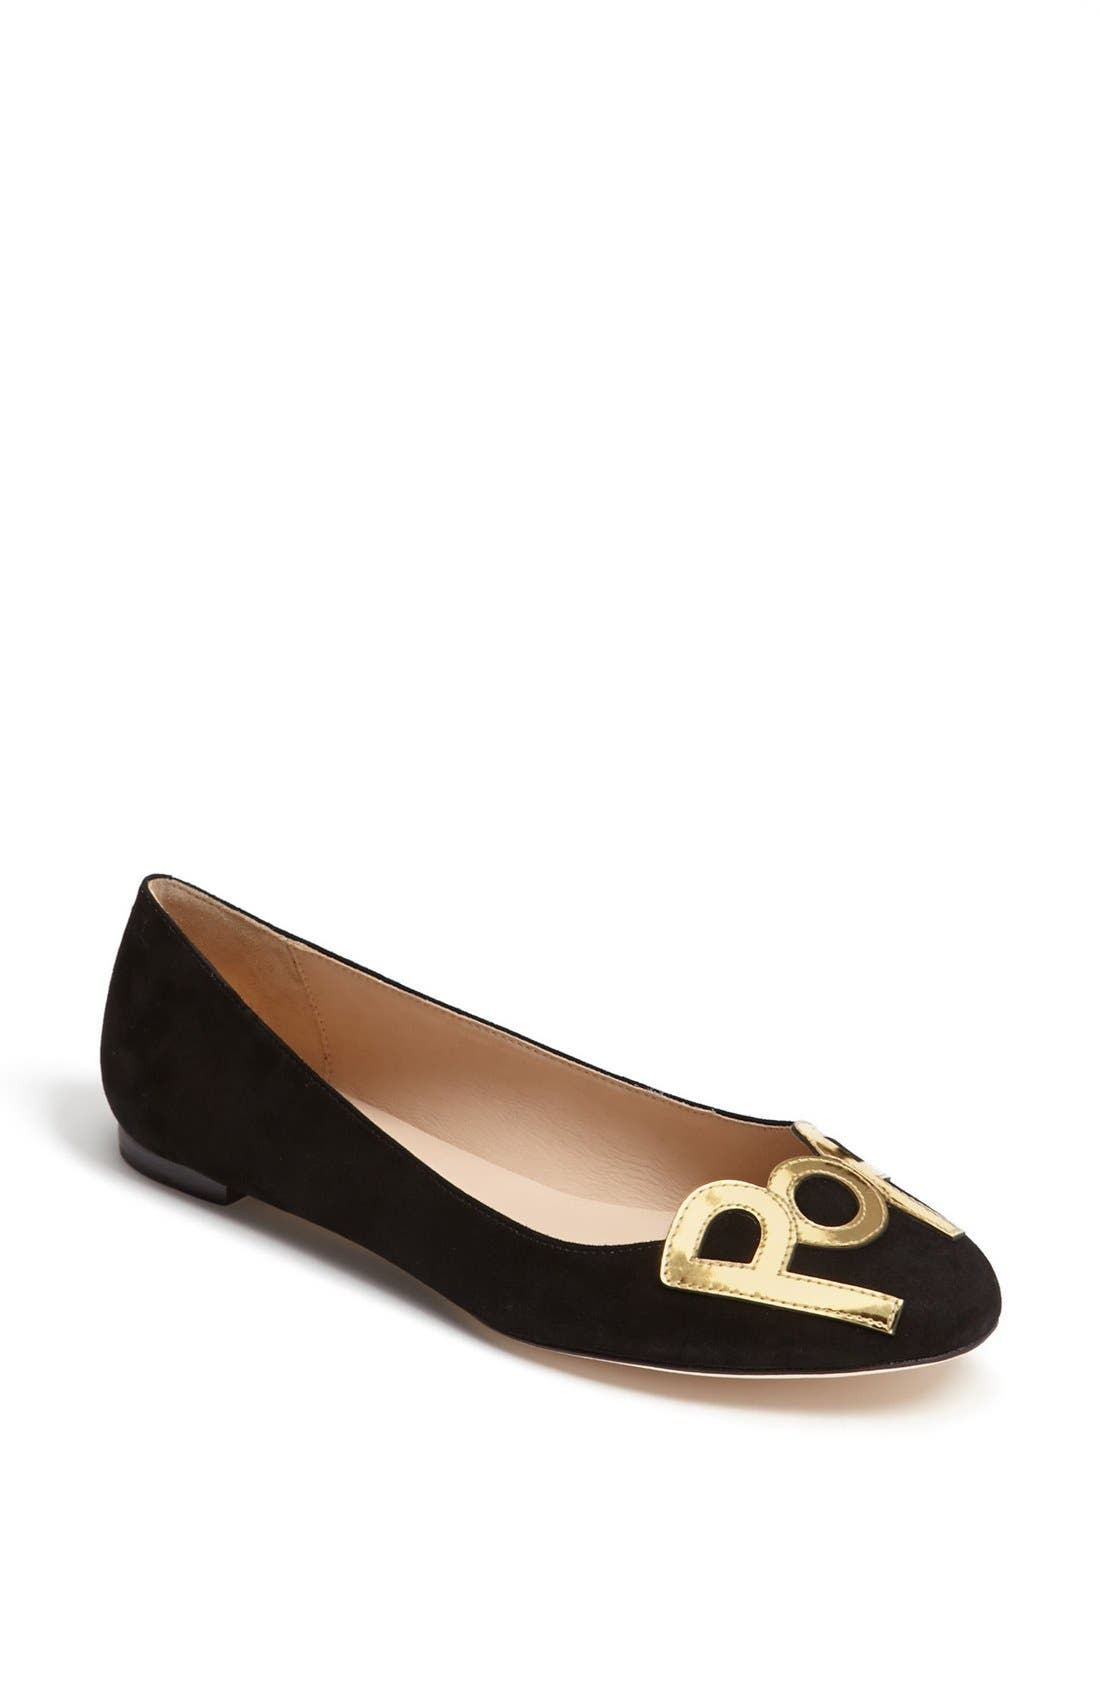 Alternate Image 1 Selected - kate spade new york 'toast' flat